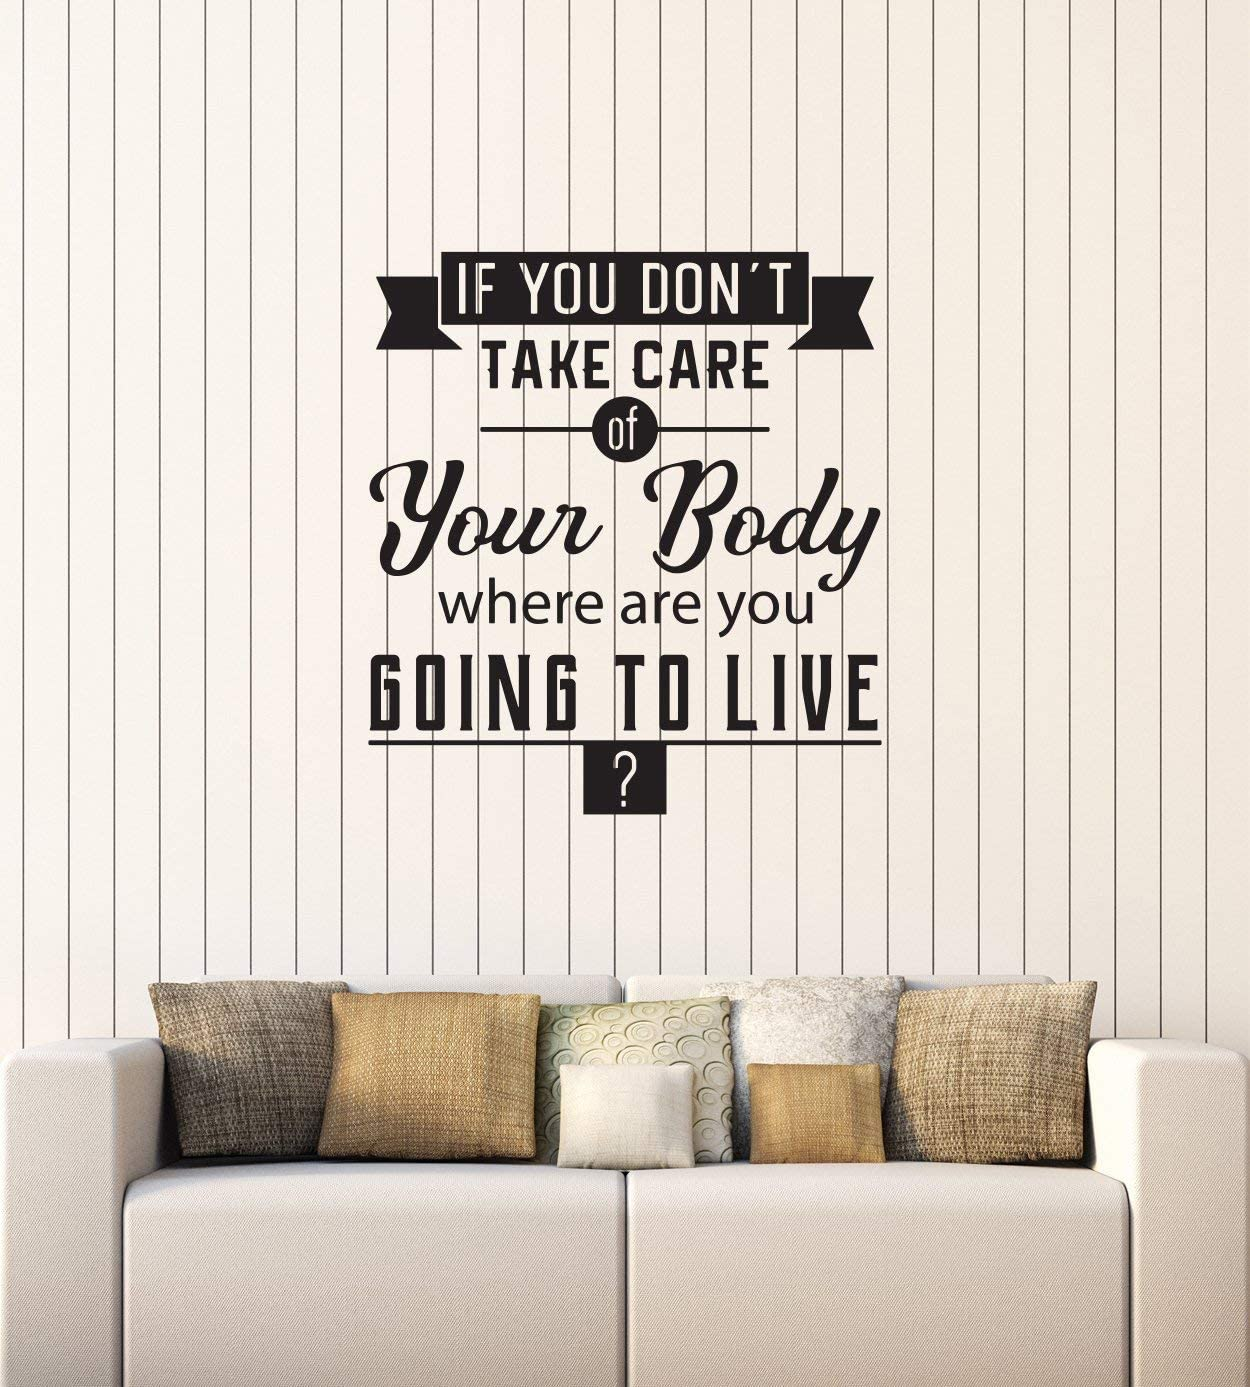 Amazon Com Vinyl Wall Decal Healthy Quote Spa Salon Gym Medical Office Interior Stickers Mural Large Decor Ig5742 Black Home Kitchen